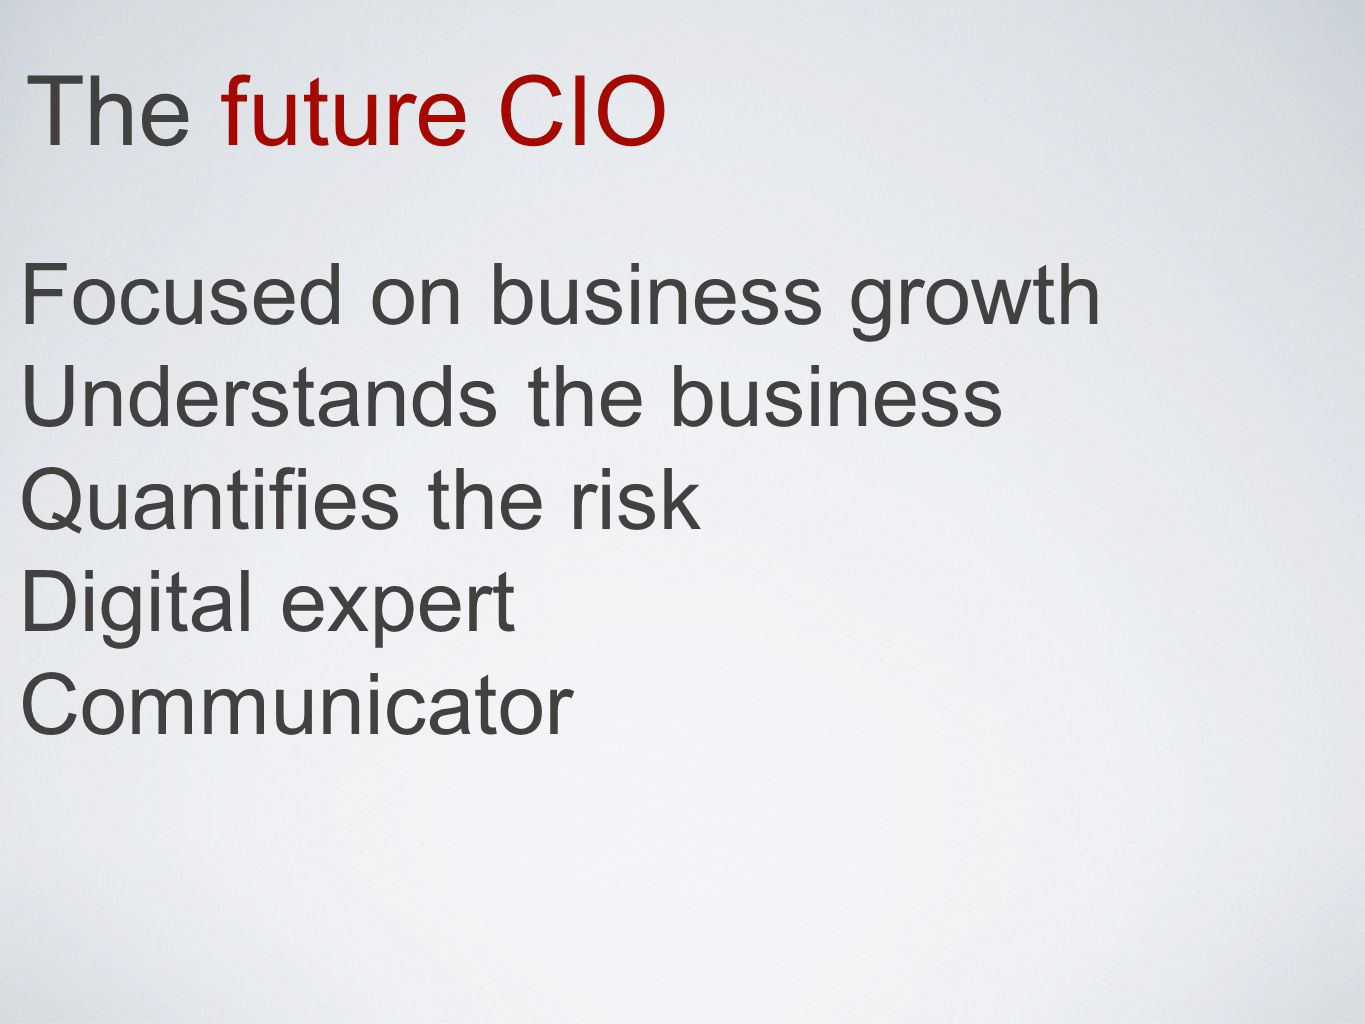 The future CIO Focused on business growth Understands the business Quantifies the risk Digital expert Communicator